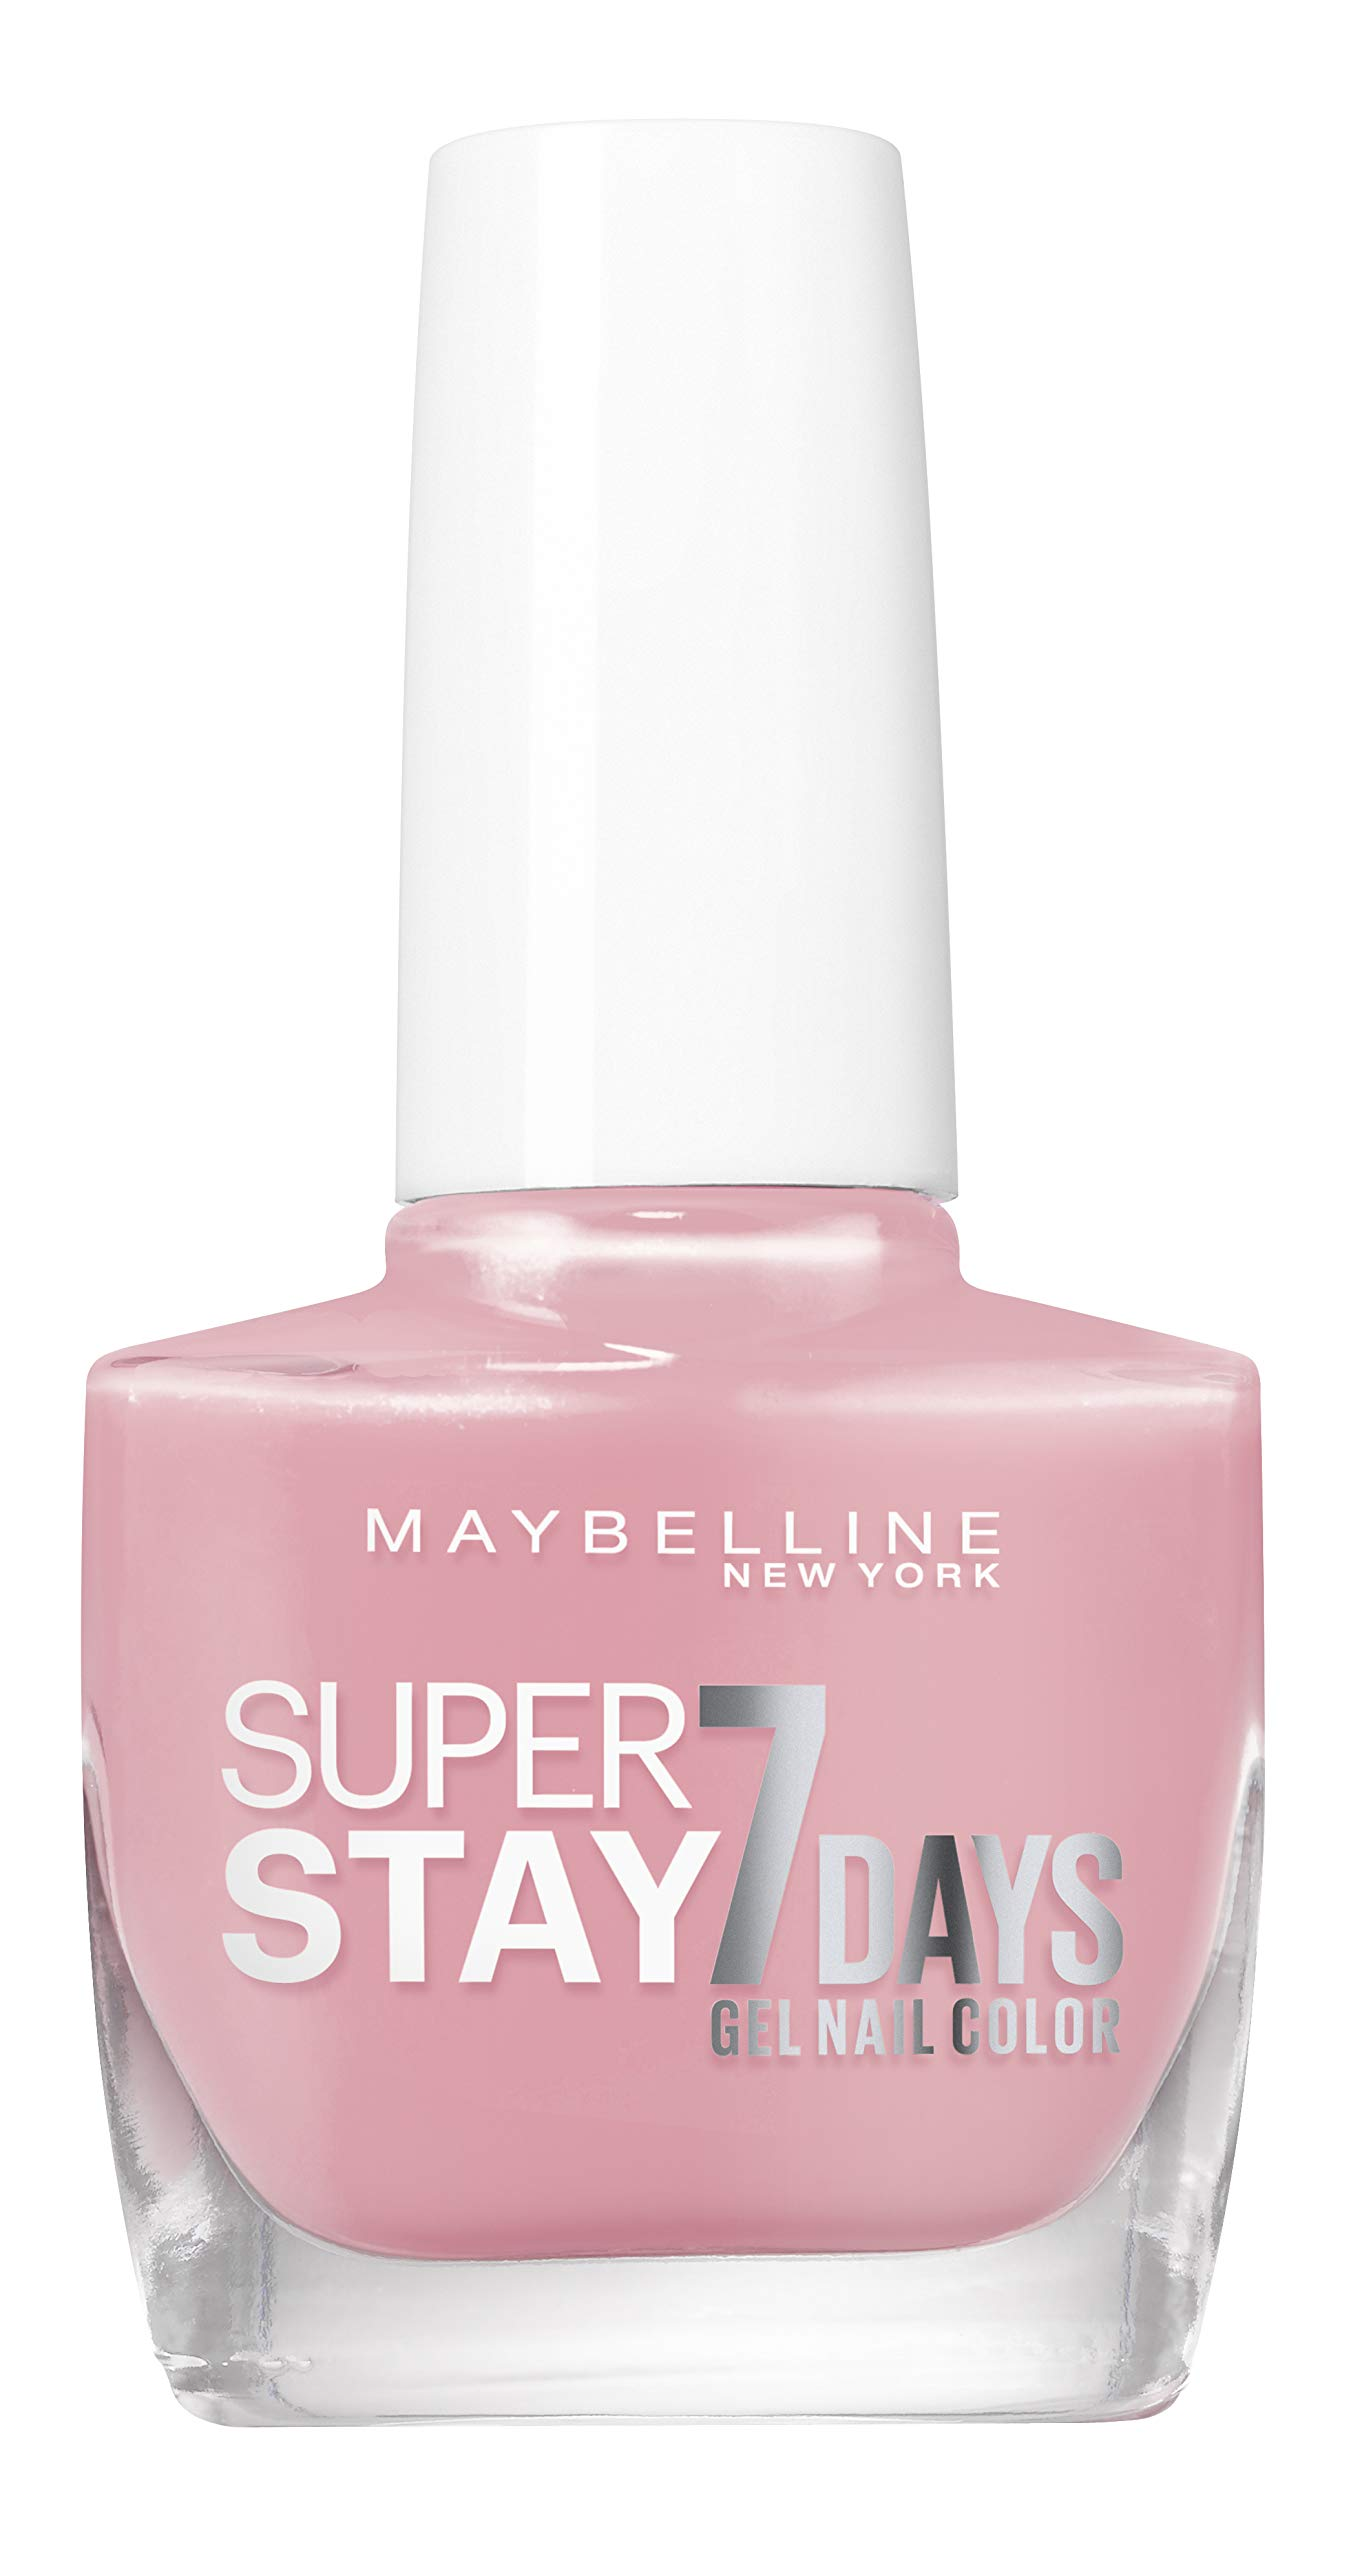 Maybelline New York – Vernis à Ongles Professionnel – Technologie Gel – Super Stay 7 Days – Teinte : Nude Rose (135)